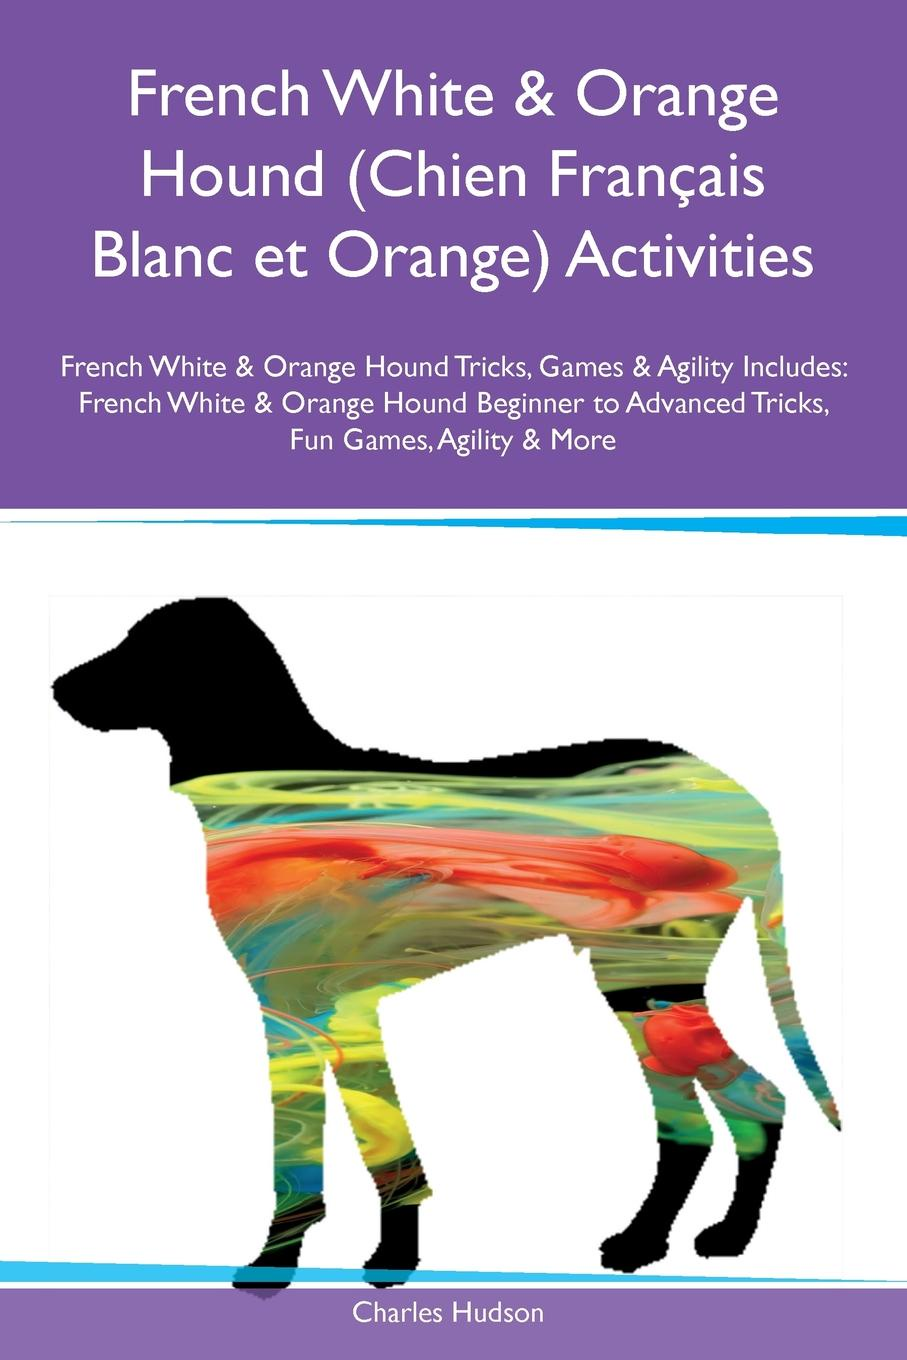 Charles Hudson French White & Orange Hound (Chien Francais Blanc et Orange) Activities French White & Orange Hound Tricks, Games & Agility Includes. French White & Orange Hound Beginner to Advanced Tricks, Fun Games, Agility & More цена